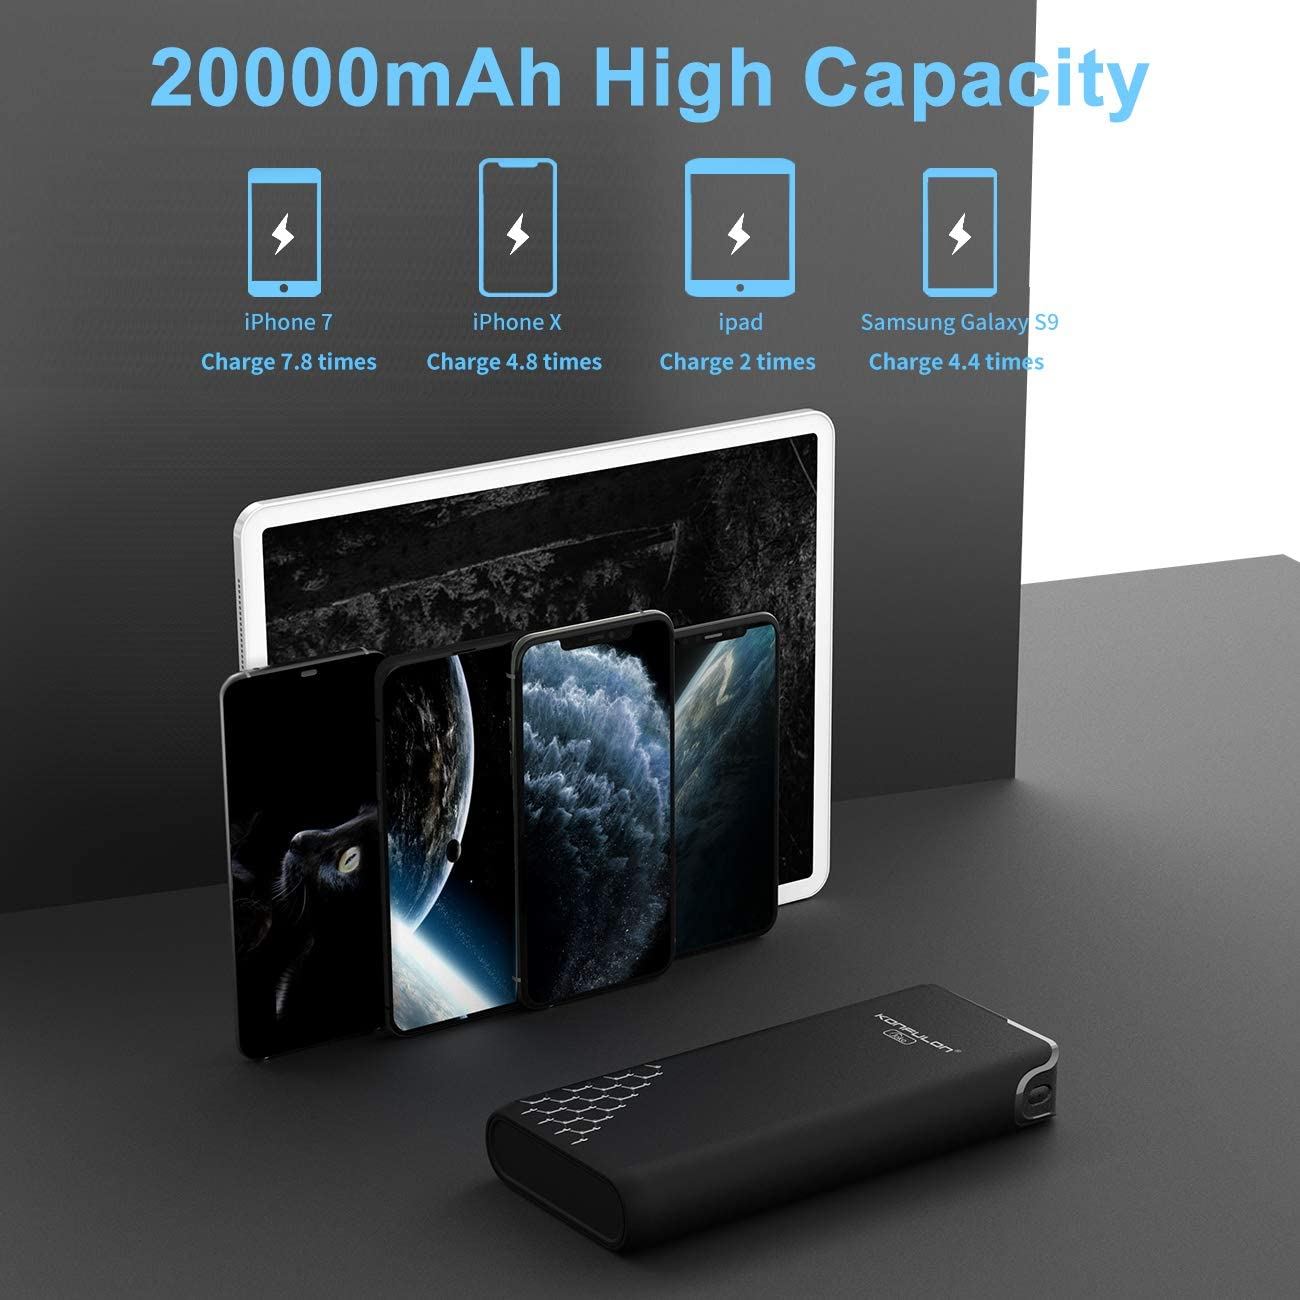 Portable Charger KONFULON Power Bank 20000mAh,Ultra High Capacity Fast Recharge External Battery Pack Tri-Input and Tri-Output with LED Display,2.1A Output Compatible with iPhone,iPad,Samsung